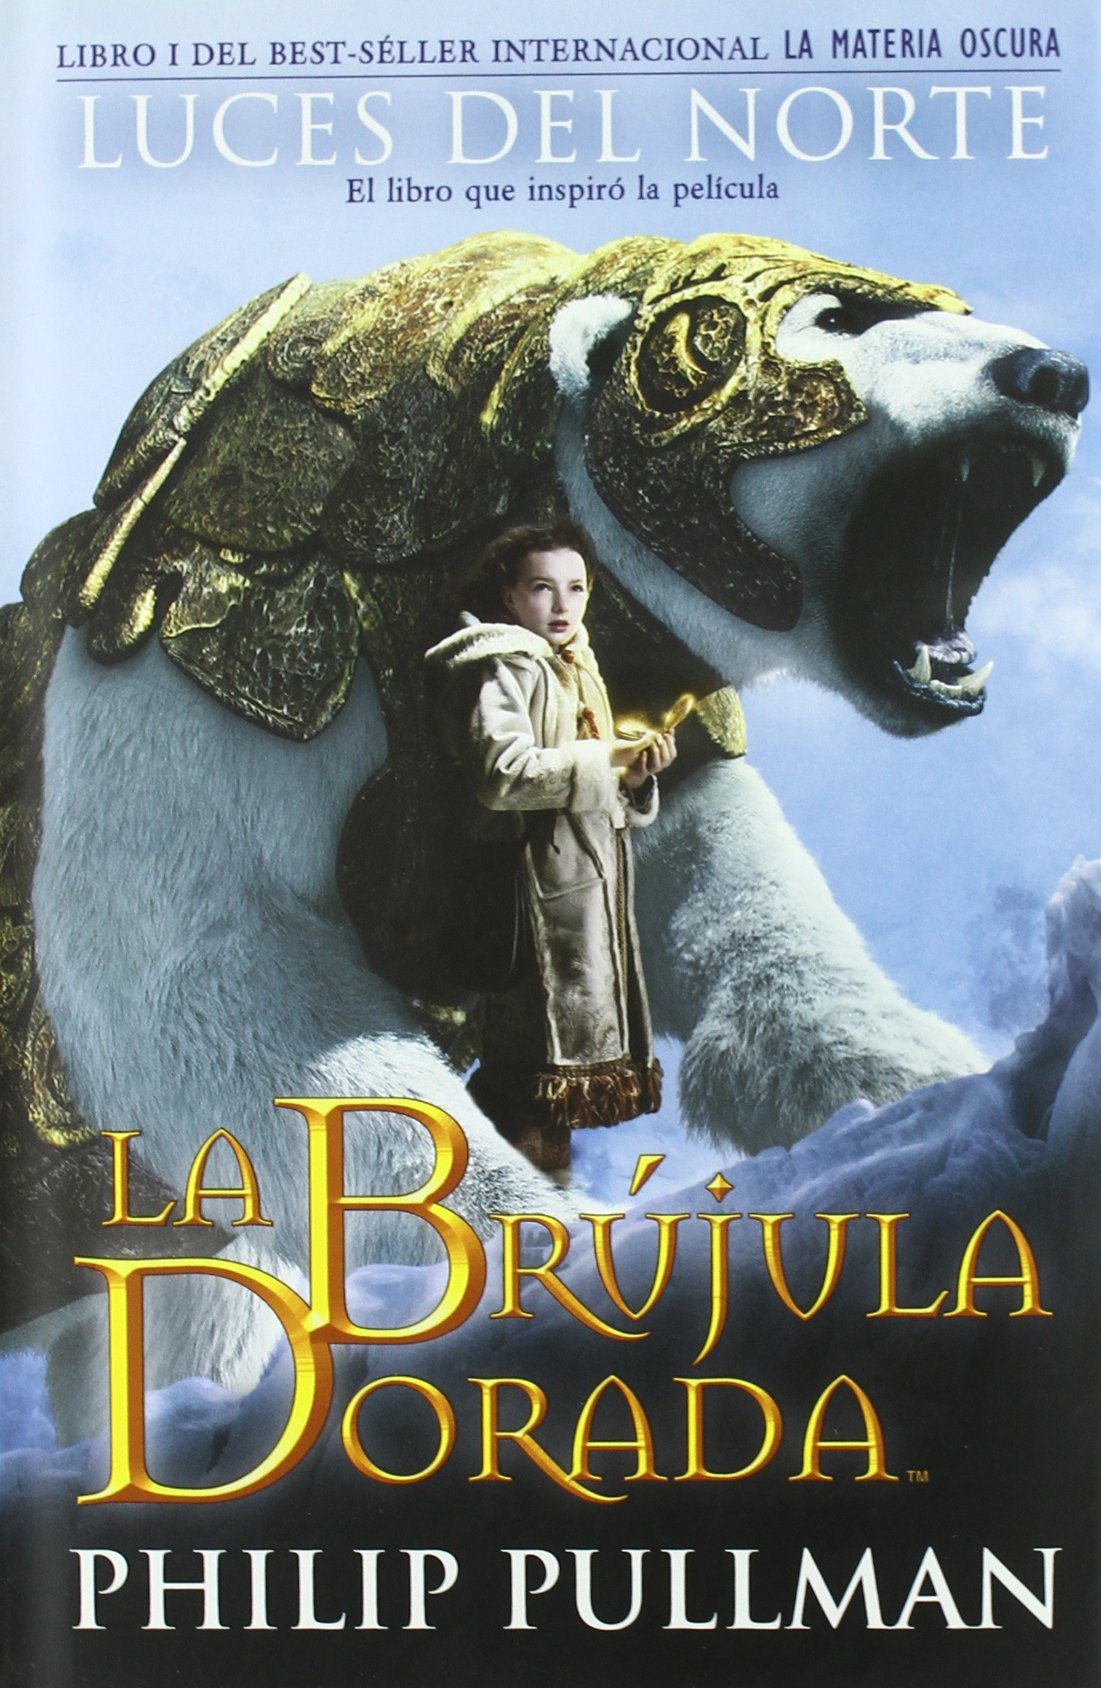 Box Set - His Dark Materials Trilogy (Spanish Edition): Philip Pullman: 9788466636261: Amazon.com: Books